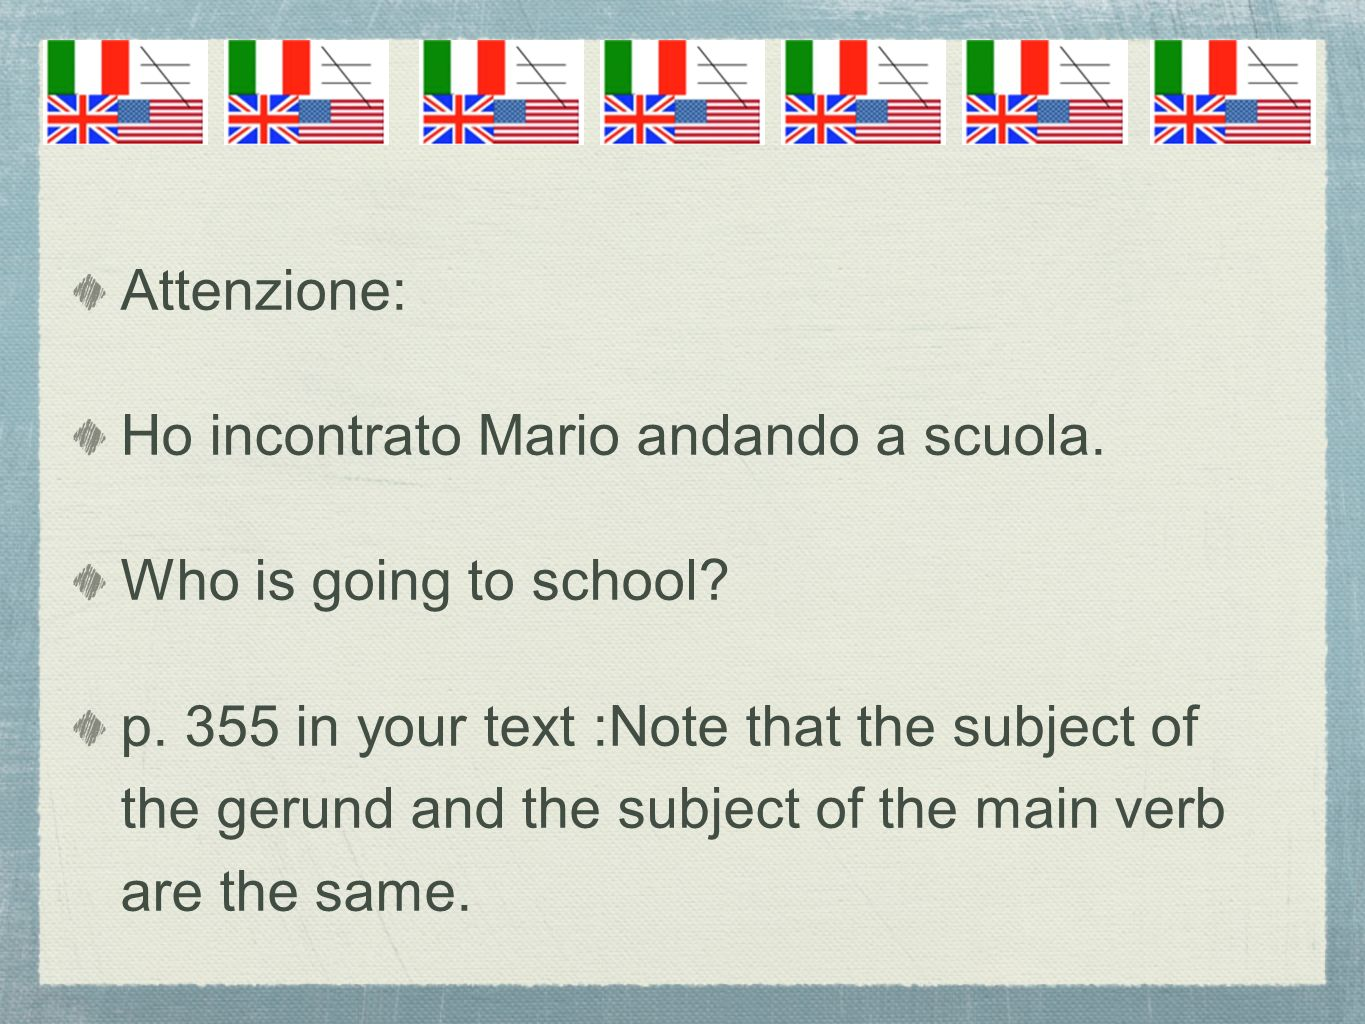 Attenzione: Ho incontrato Mario andando a scuola. Who is going to school